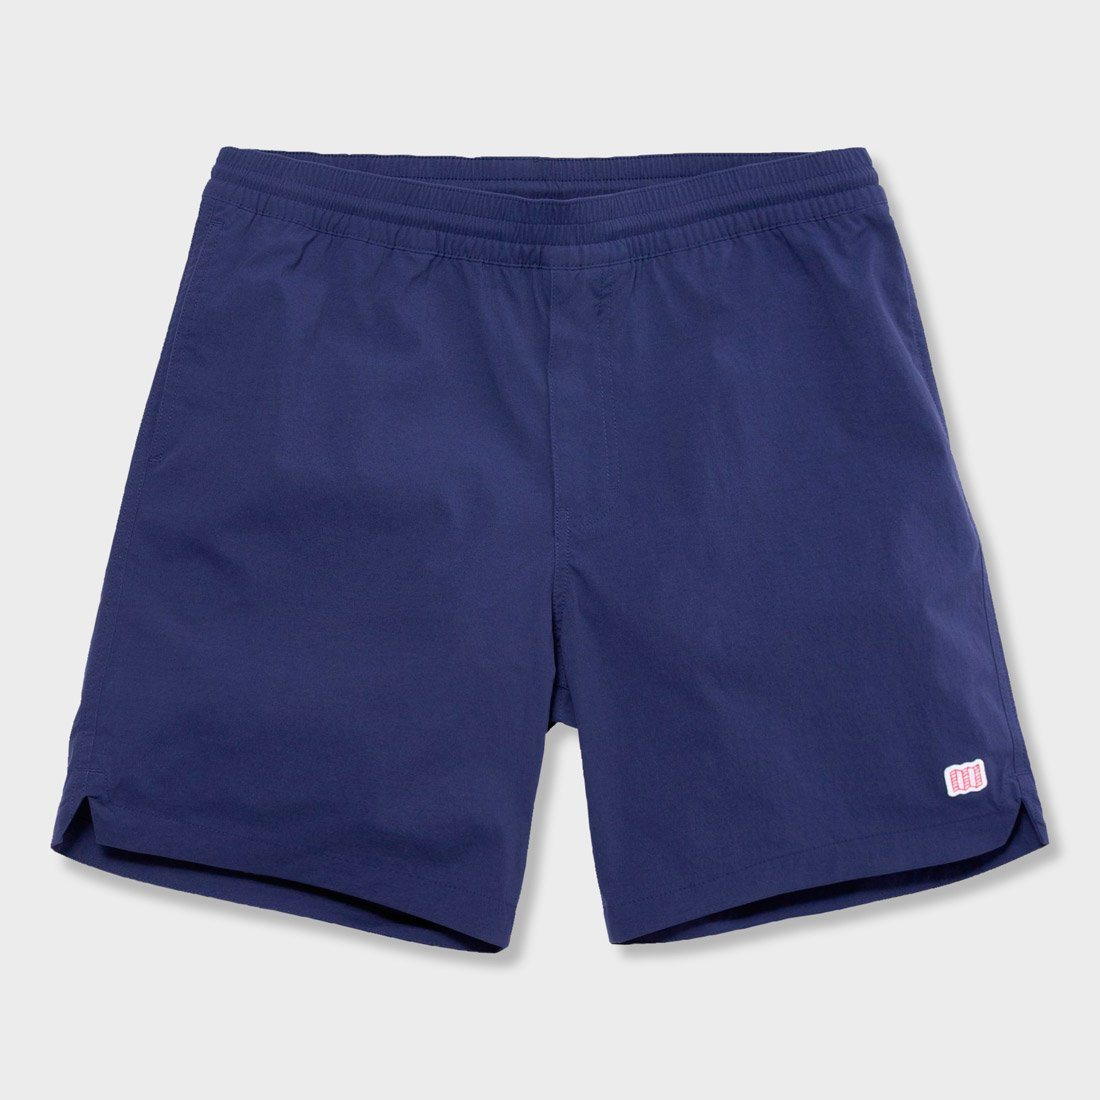 Topo Designs Global Shorts Navy